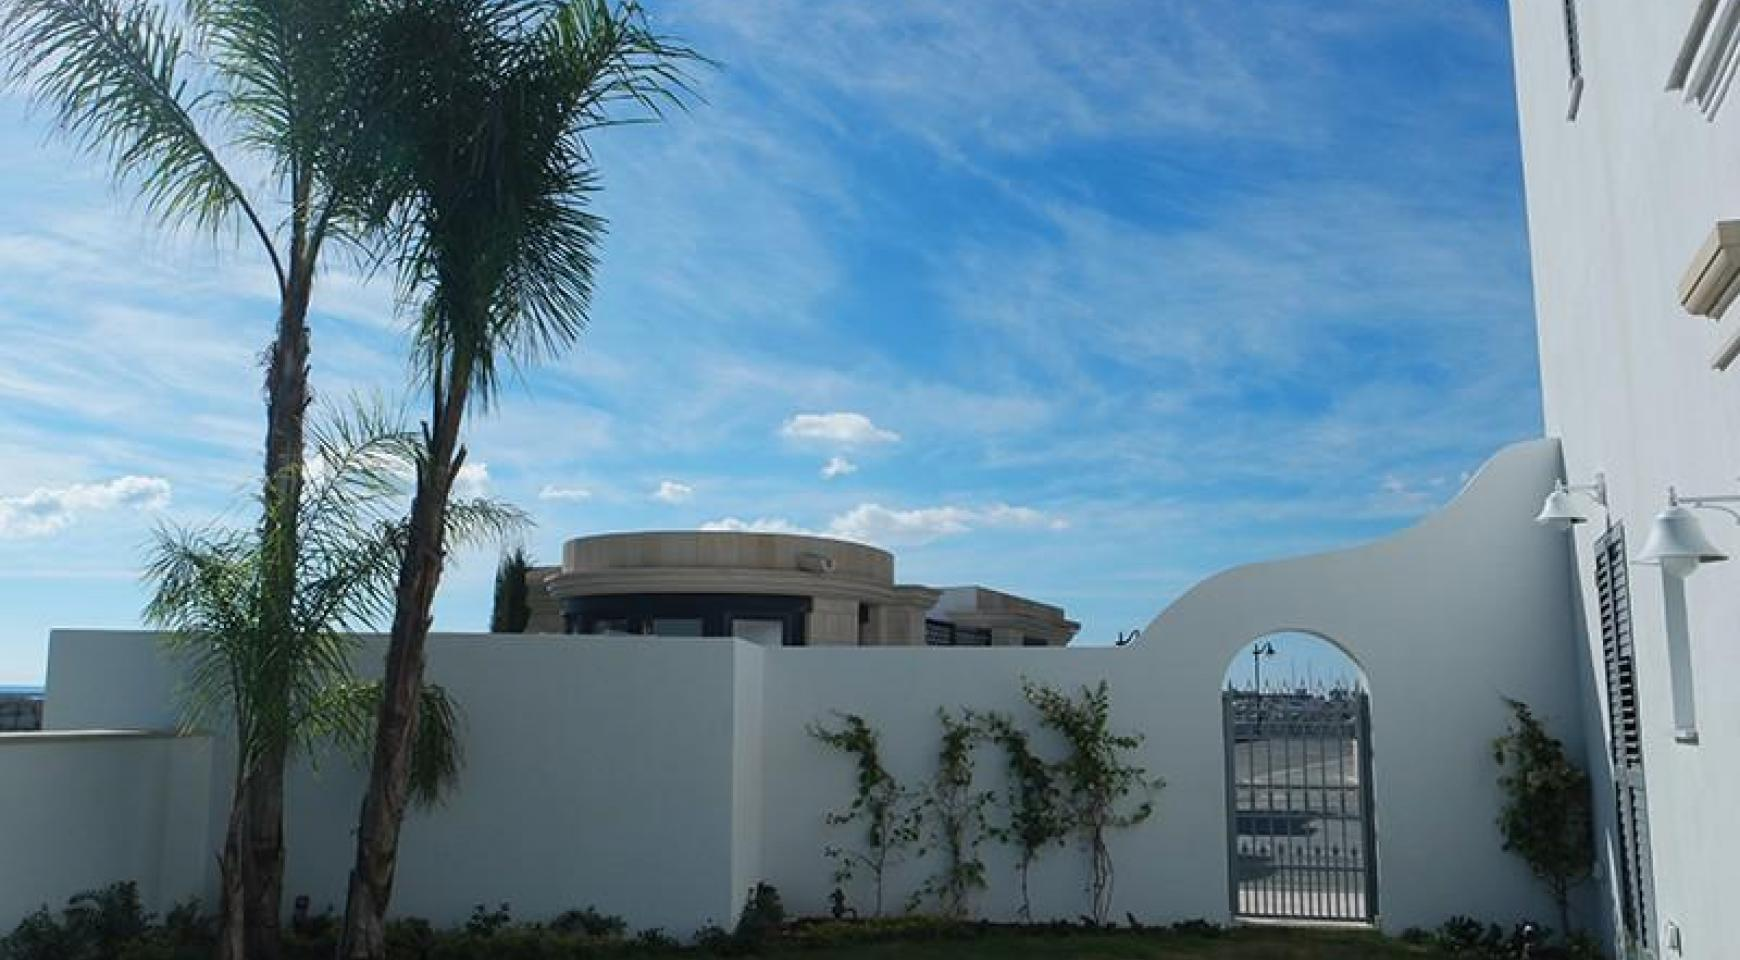 Luxurious 3 Bedroom Villa in an Exclusive development by the Sea - 15